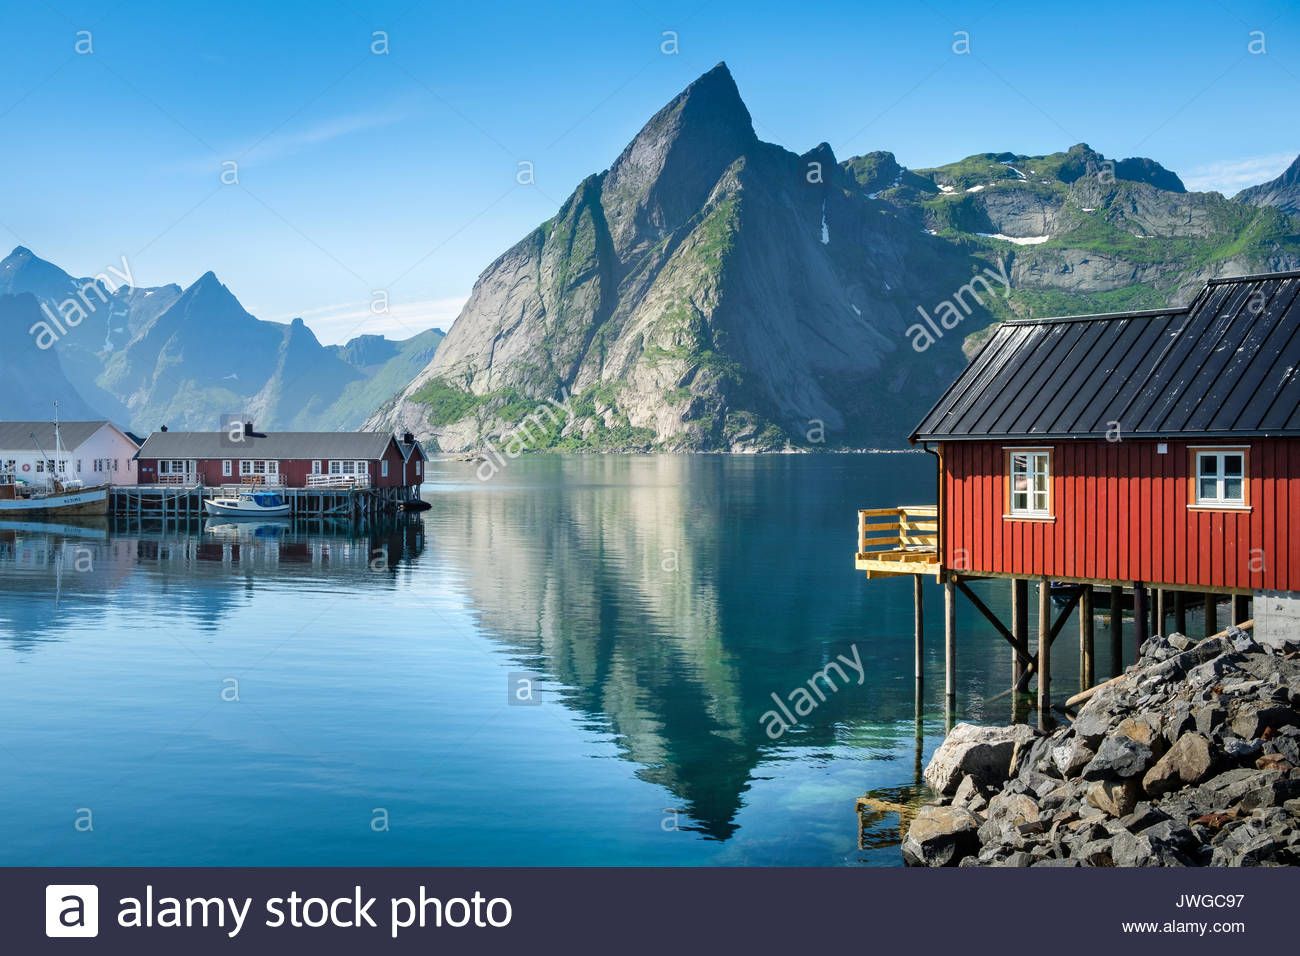 Scenic view from idyllic village with mountains at bright summer day in Hamnoy, Lofoten, Norway - Stock Image